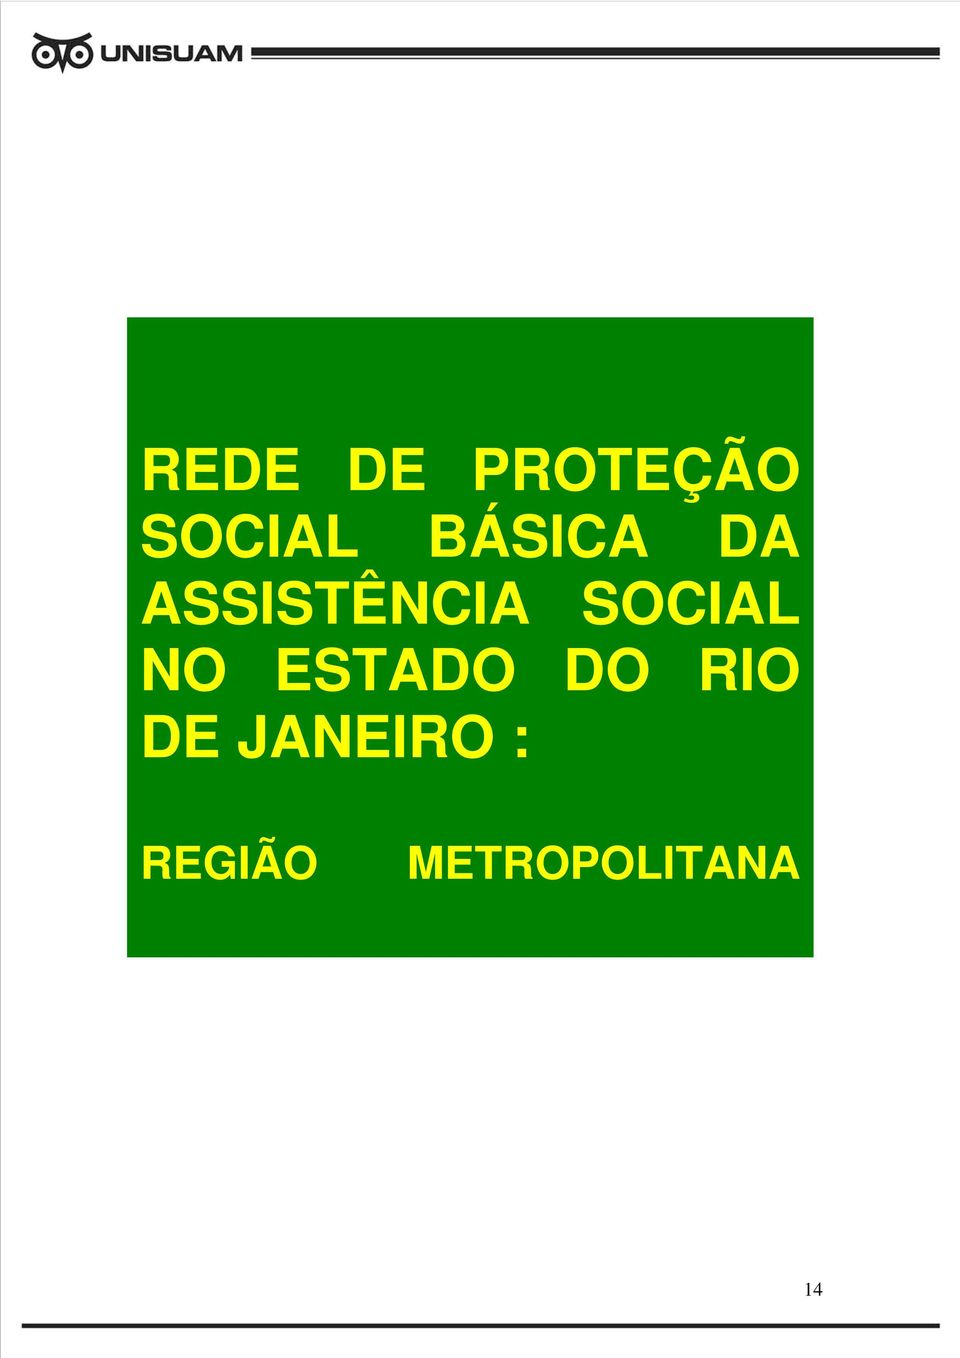 SOCIAL NO ESTADO DO RIO DE